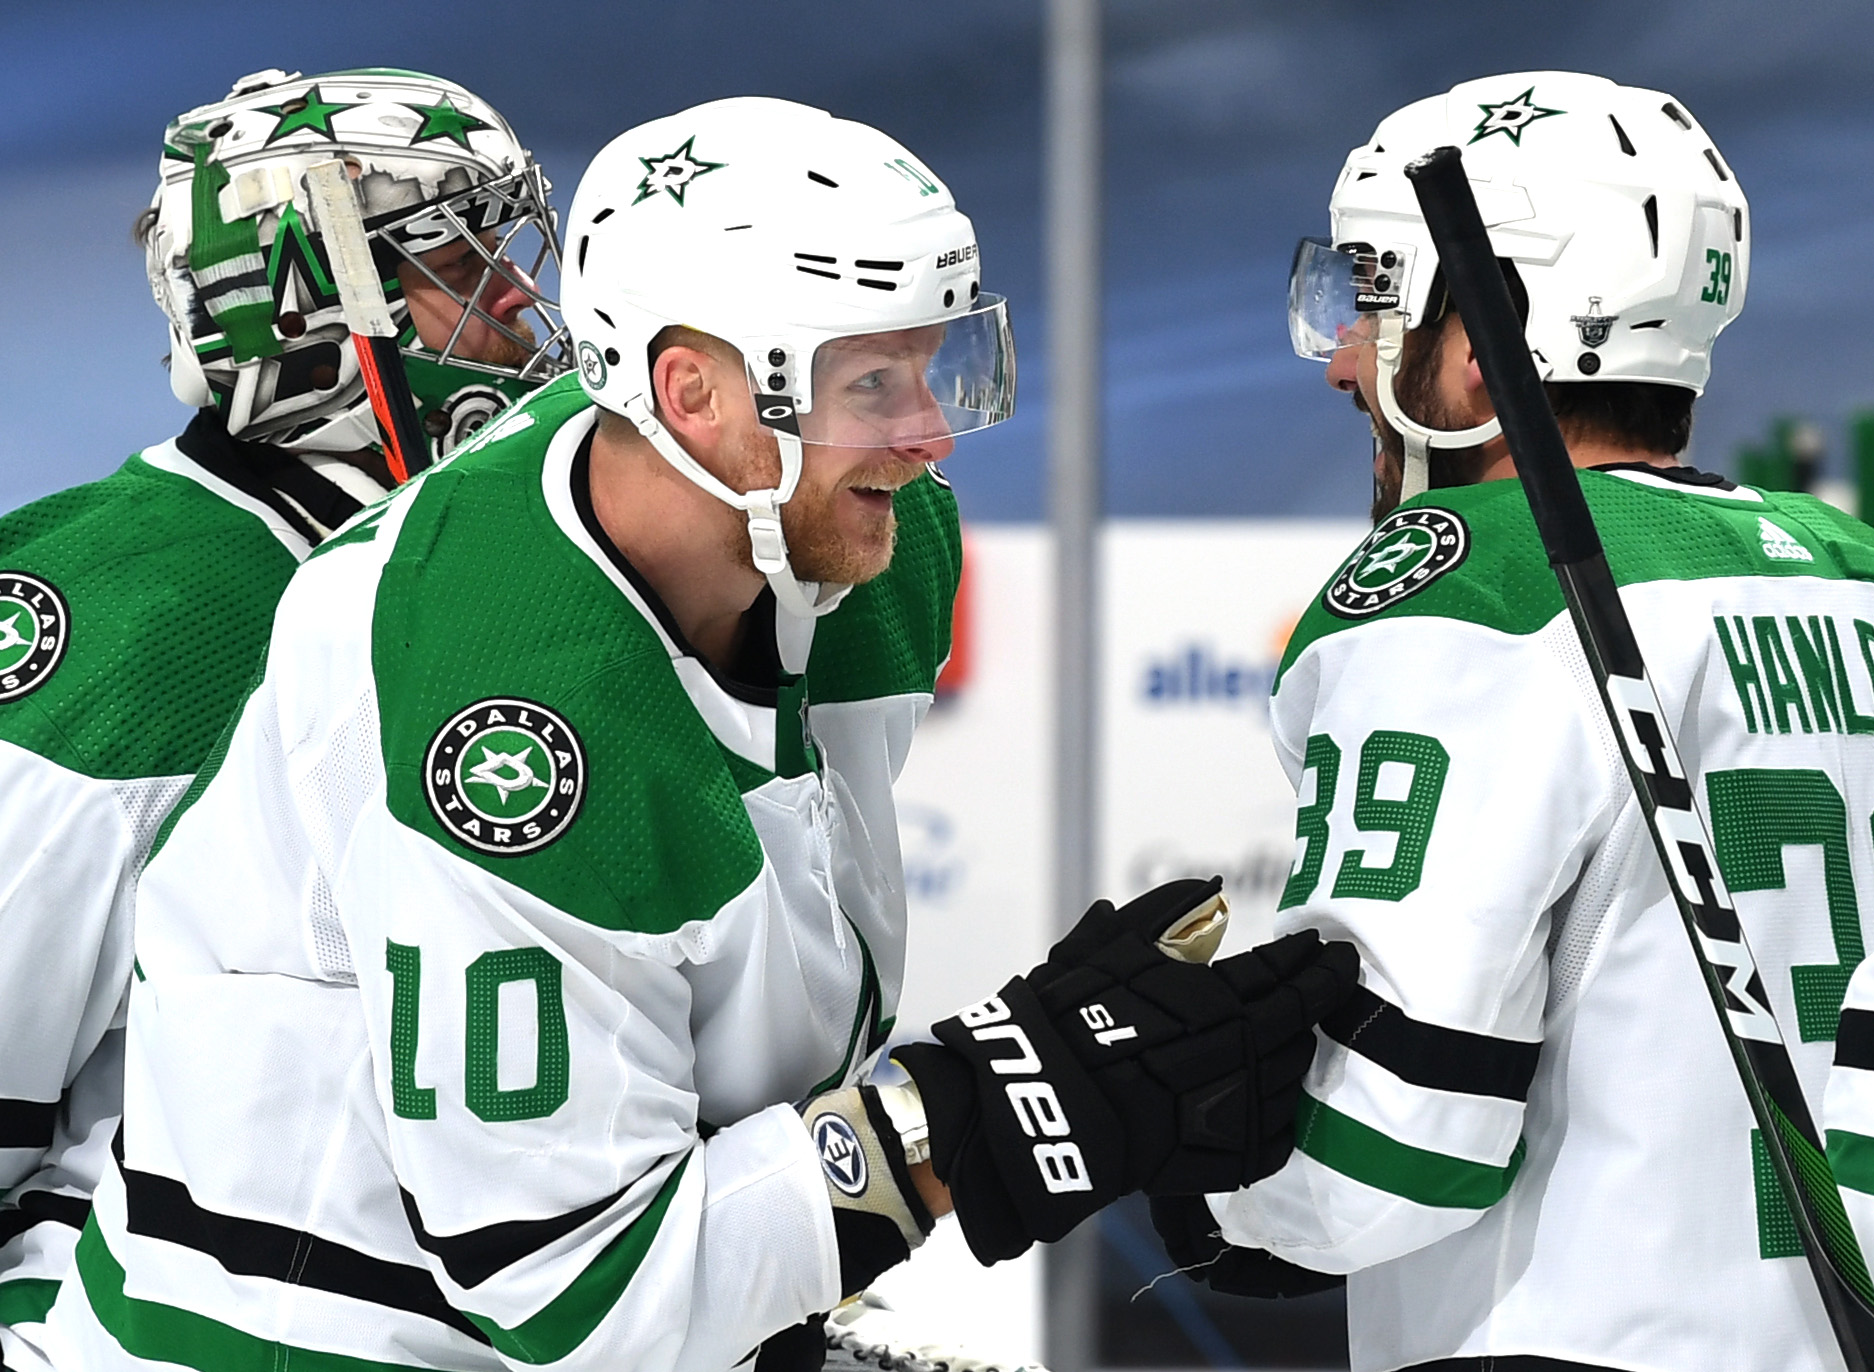 EDMONTON, ALBERTA - SEPTEMBER 14: Corey Perry #10 and Joel Hanley #39 of the Dallas Stars celebrate after the Stars 3-2 overtime win against the Vegas Golden Knights in Game Five of the Western Conference Final of the 2020 NHL Stanley Cup Playoffs between the Dallas Stars and the Vegas Golden Knights at Rogers Place on September 14, 2020 in Edmonton, Alberta.